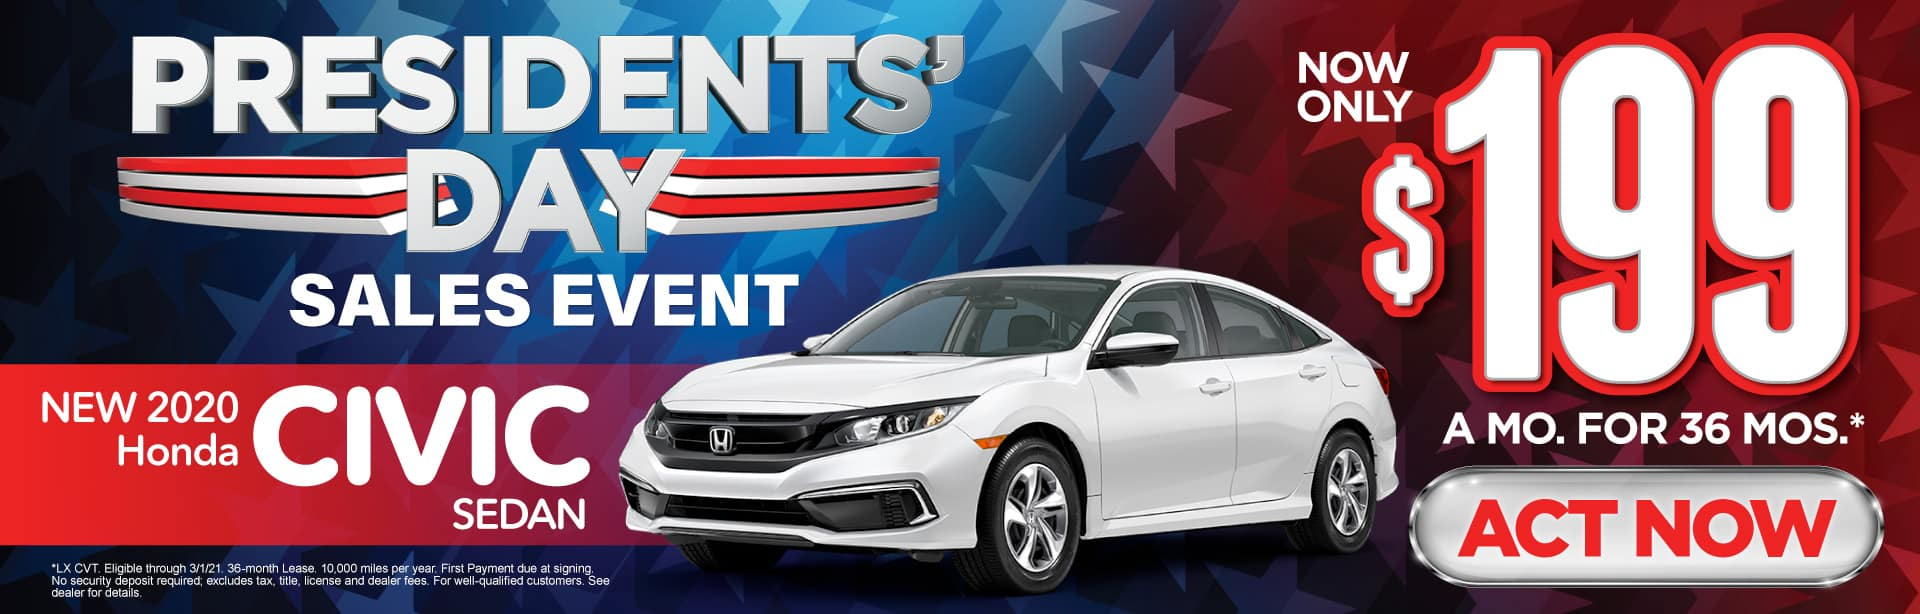 New 2020 Honda Civic - Only $199 a month - Act Now